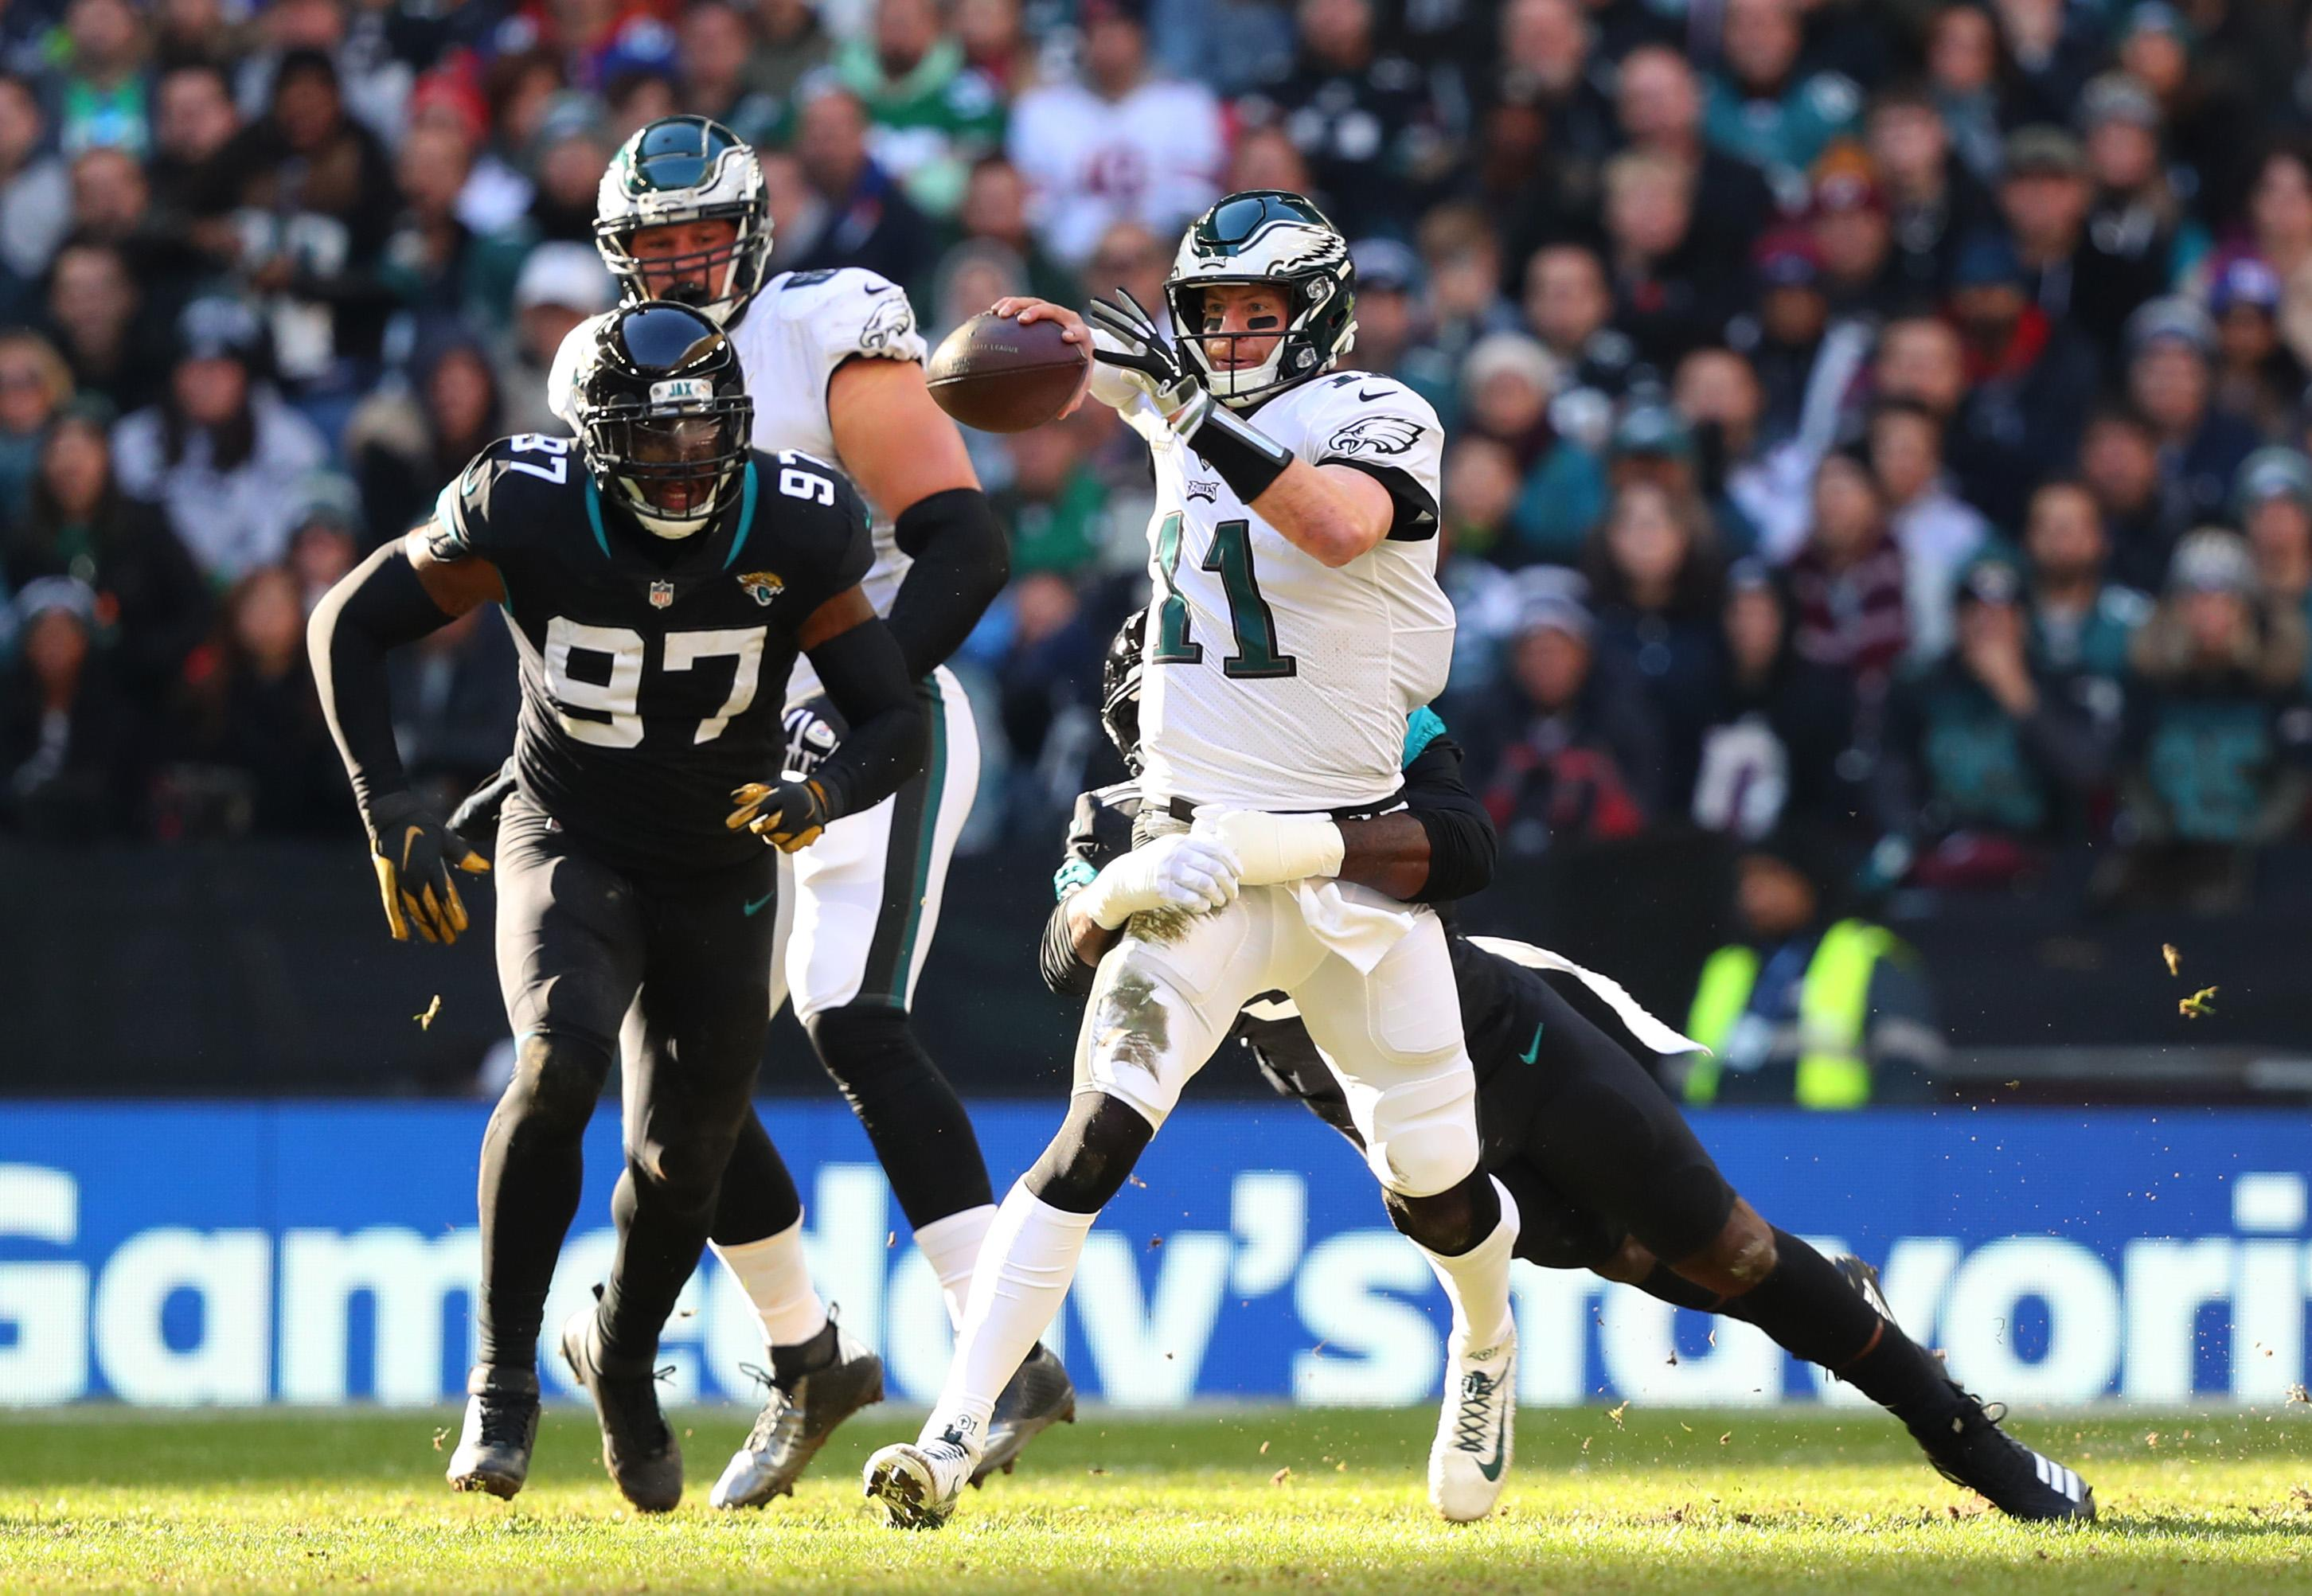 Philadelphia Eagles beat Jacksonville Jaguars 24-18 at Wembley on Sunday